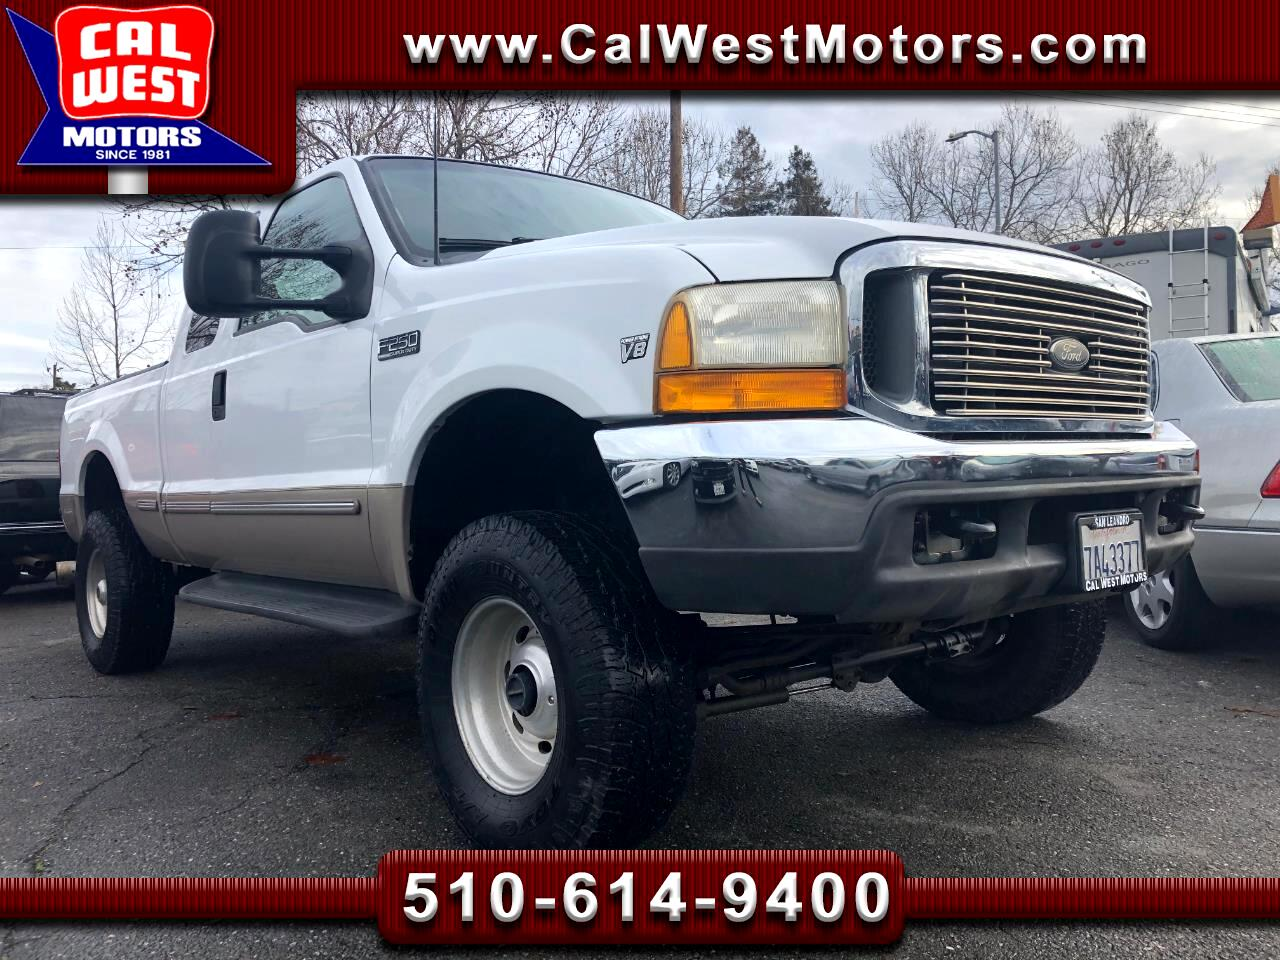 1999 Ford F-250 SD 4X4 Lariat SuperCab 7.3L Diesel VeryClean ExMtnce